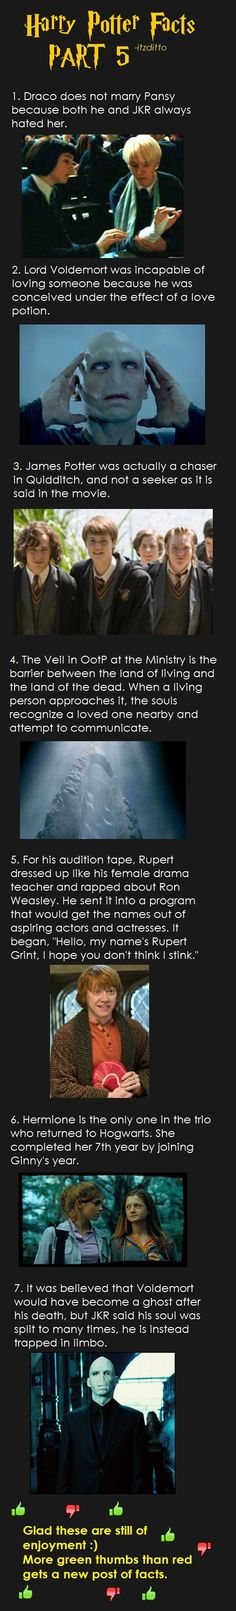 funny harry potter facts